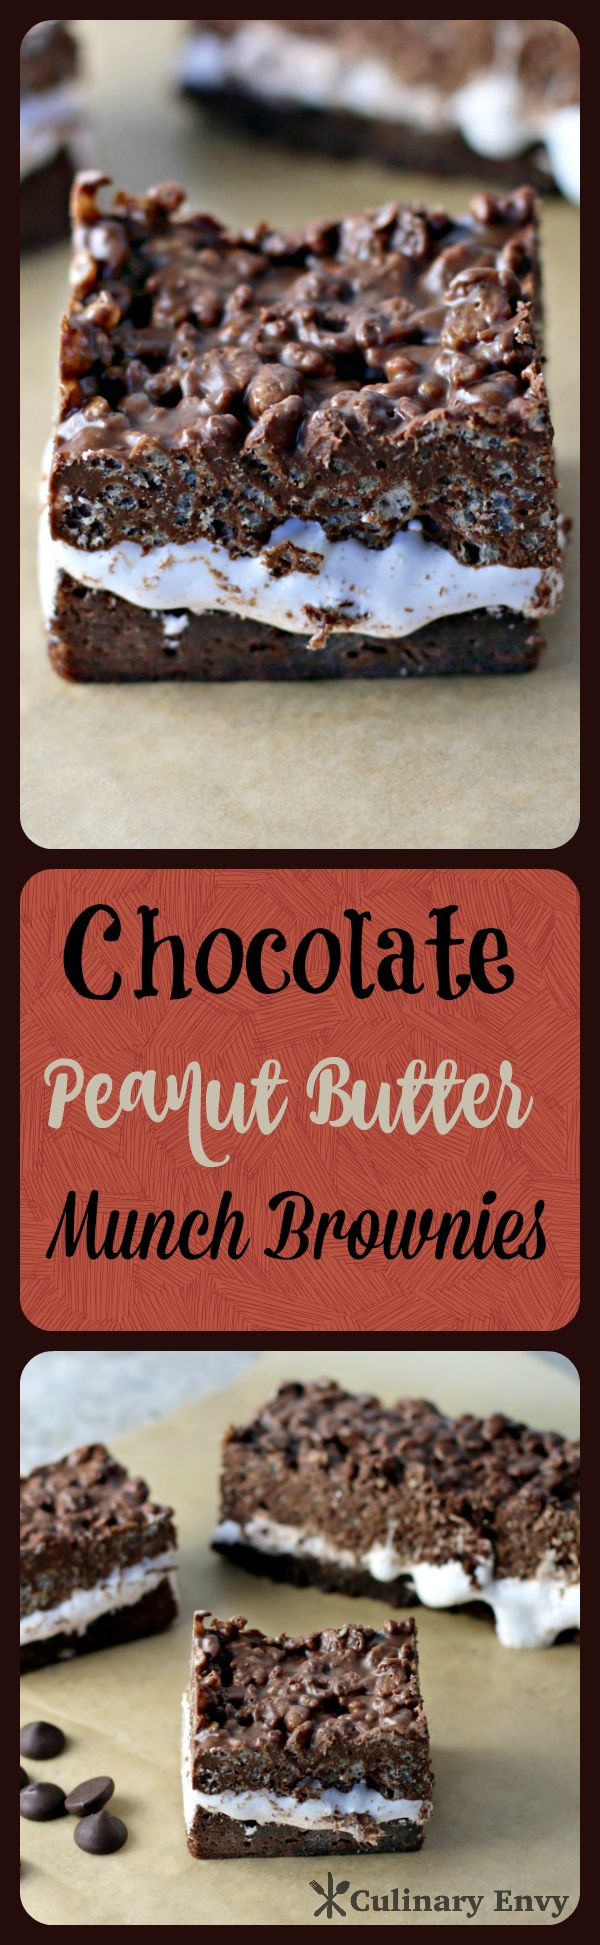 Chocolate Peanut Butter Munch Brownies are 3 easy layers of irresistible goodness. Sweet, crunchy and gratifying; a chocolate lovers dream!